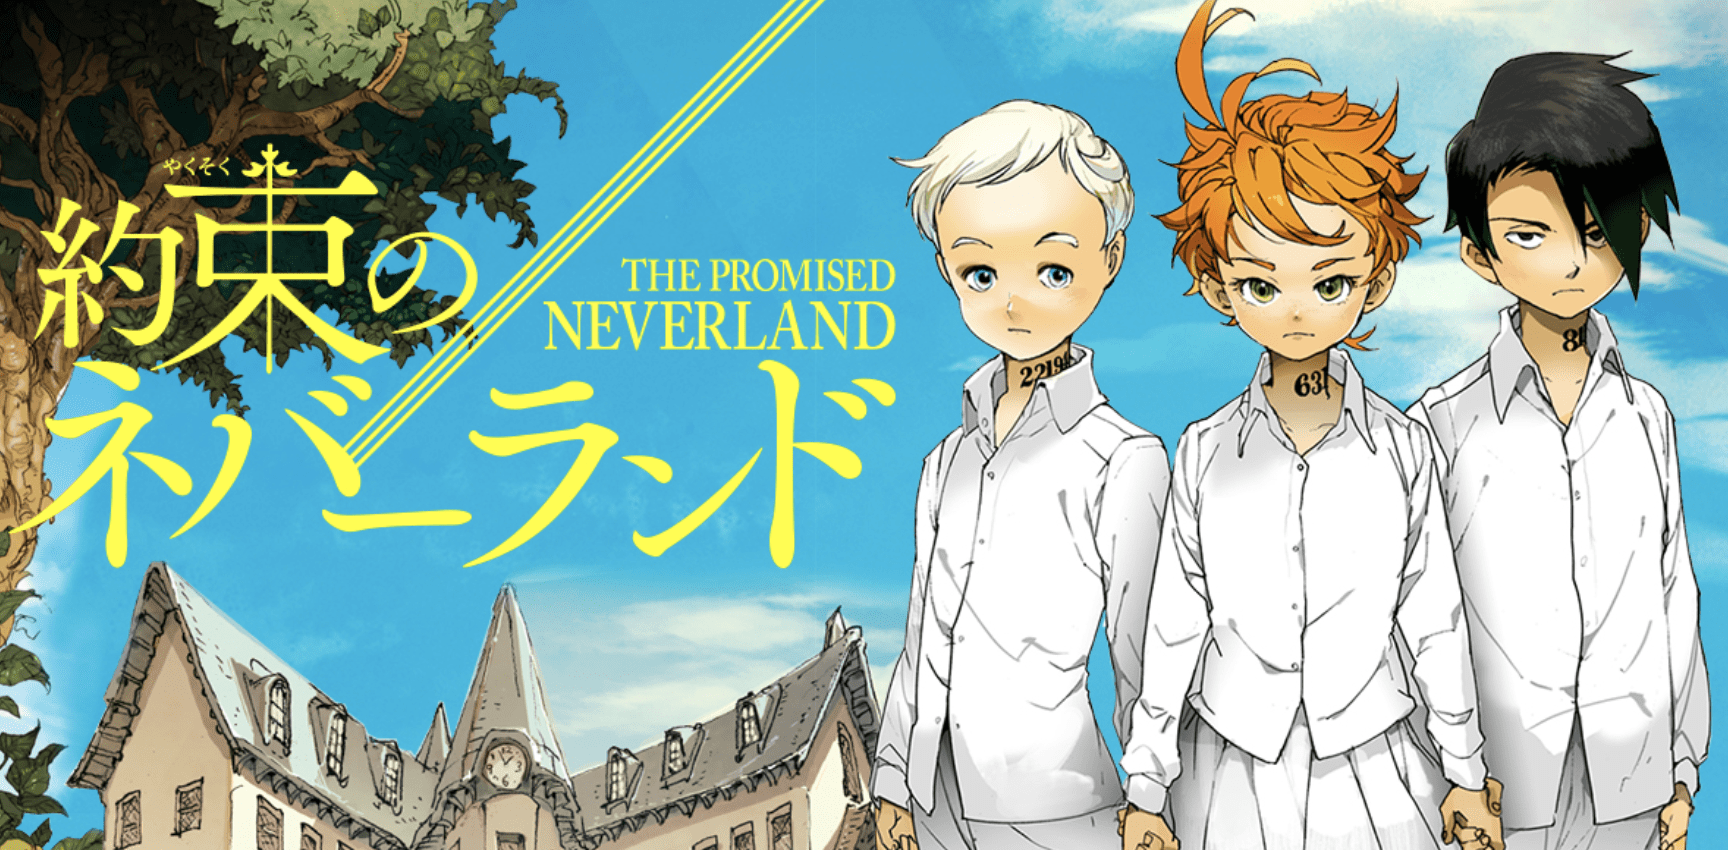 The Promised Neverland Is the Suspenseful, Well-Written